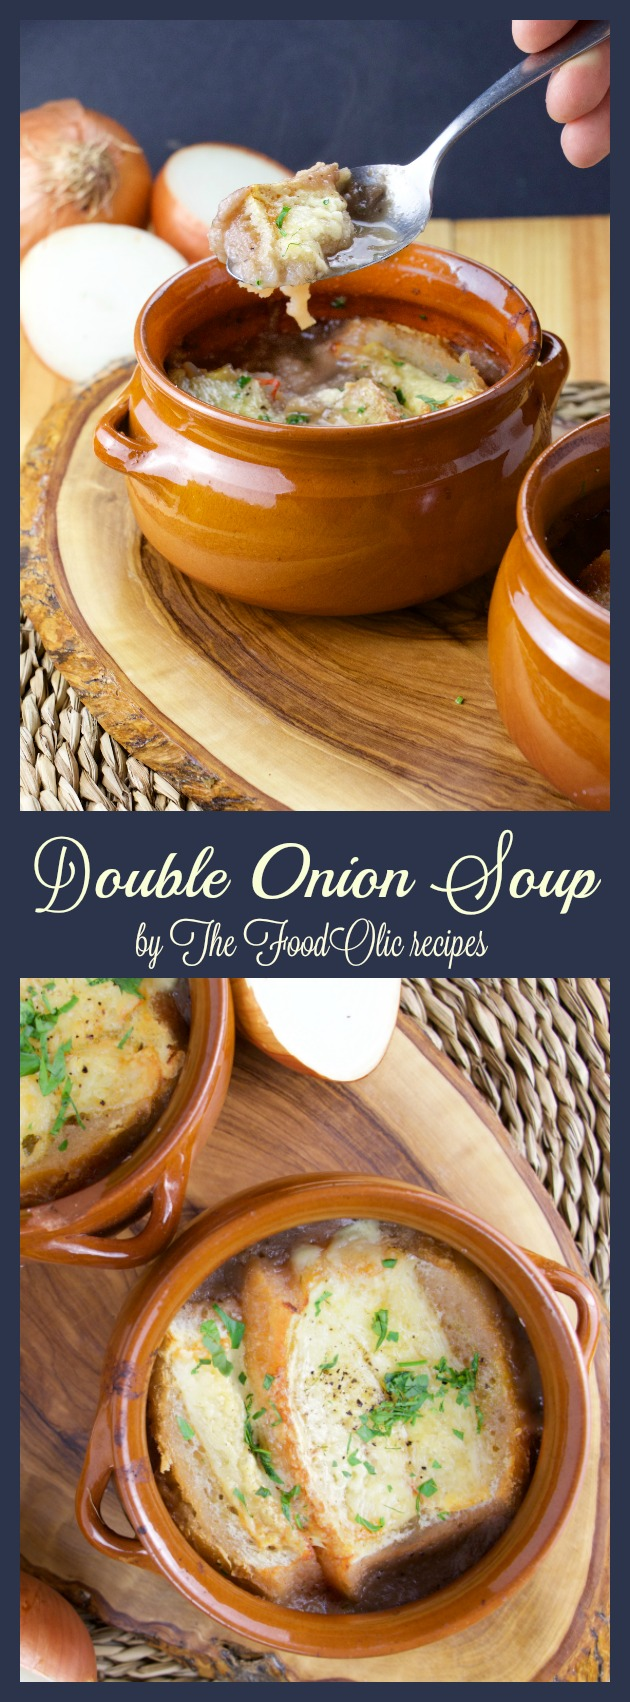 This is two soups in one for an extra tasty onion soup. Don't we all love a good onion soup? Imagine combining an onion cream with a french onion soup! The result is just exponentially delicious!